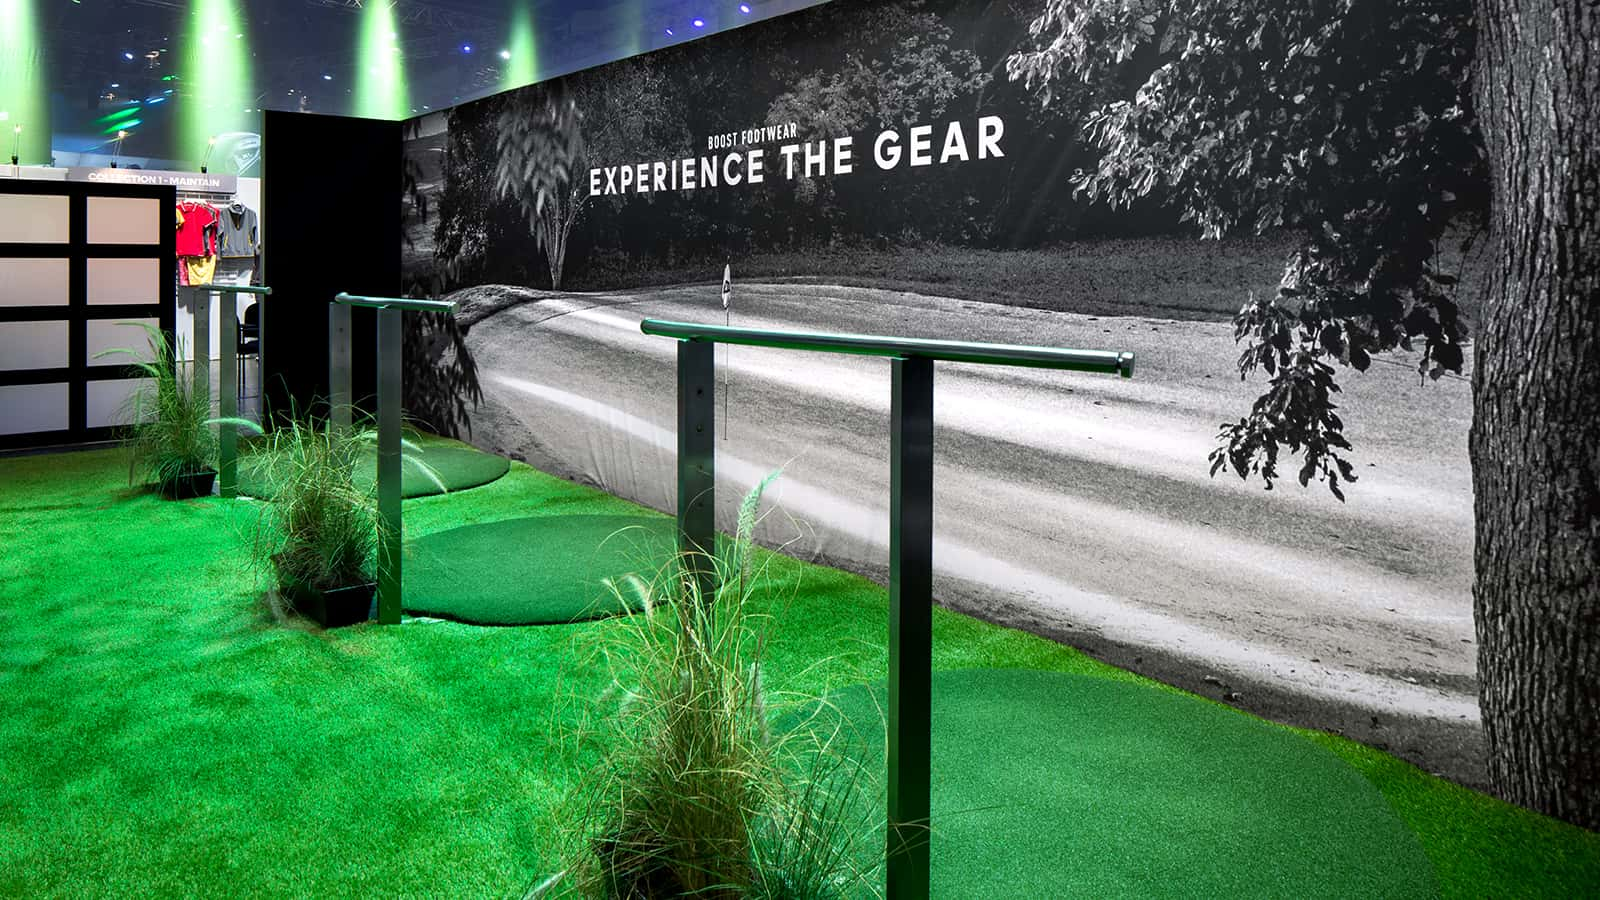 Experience the Gear Boost Footwear zone at the adidas Golf PGA Merchandise Show 2017 experience.